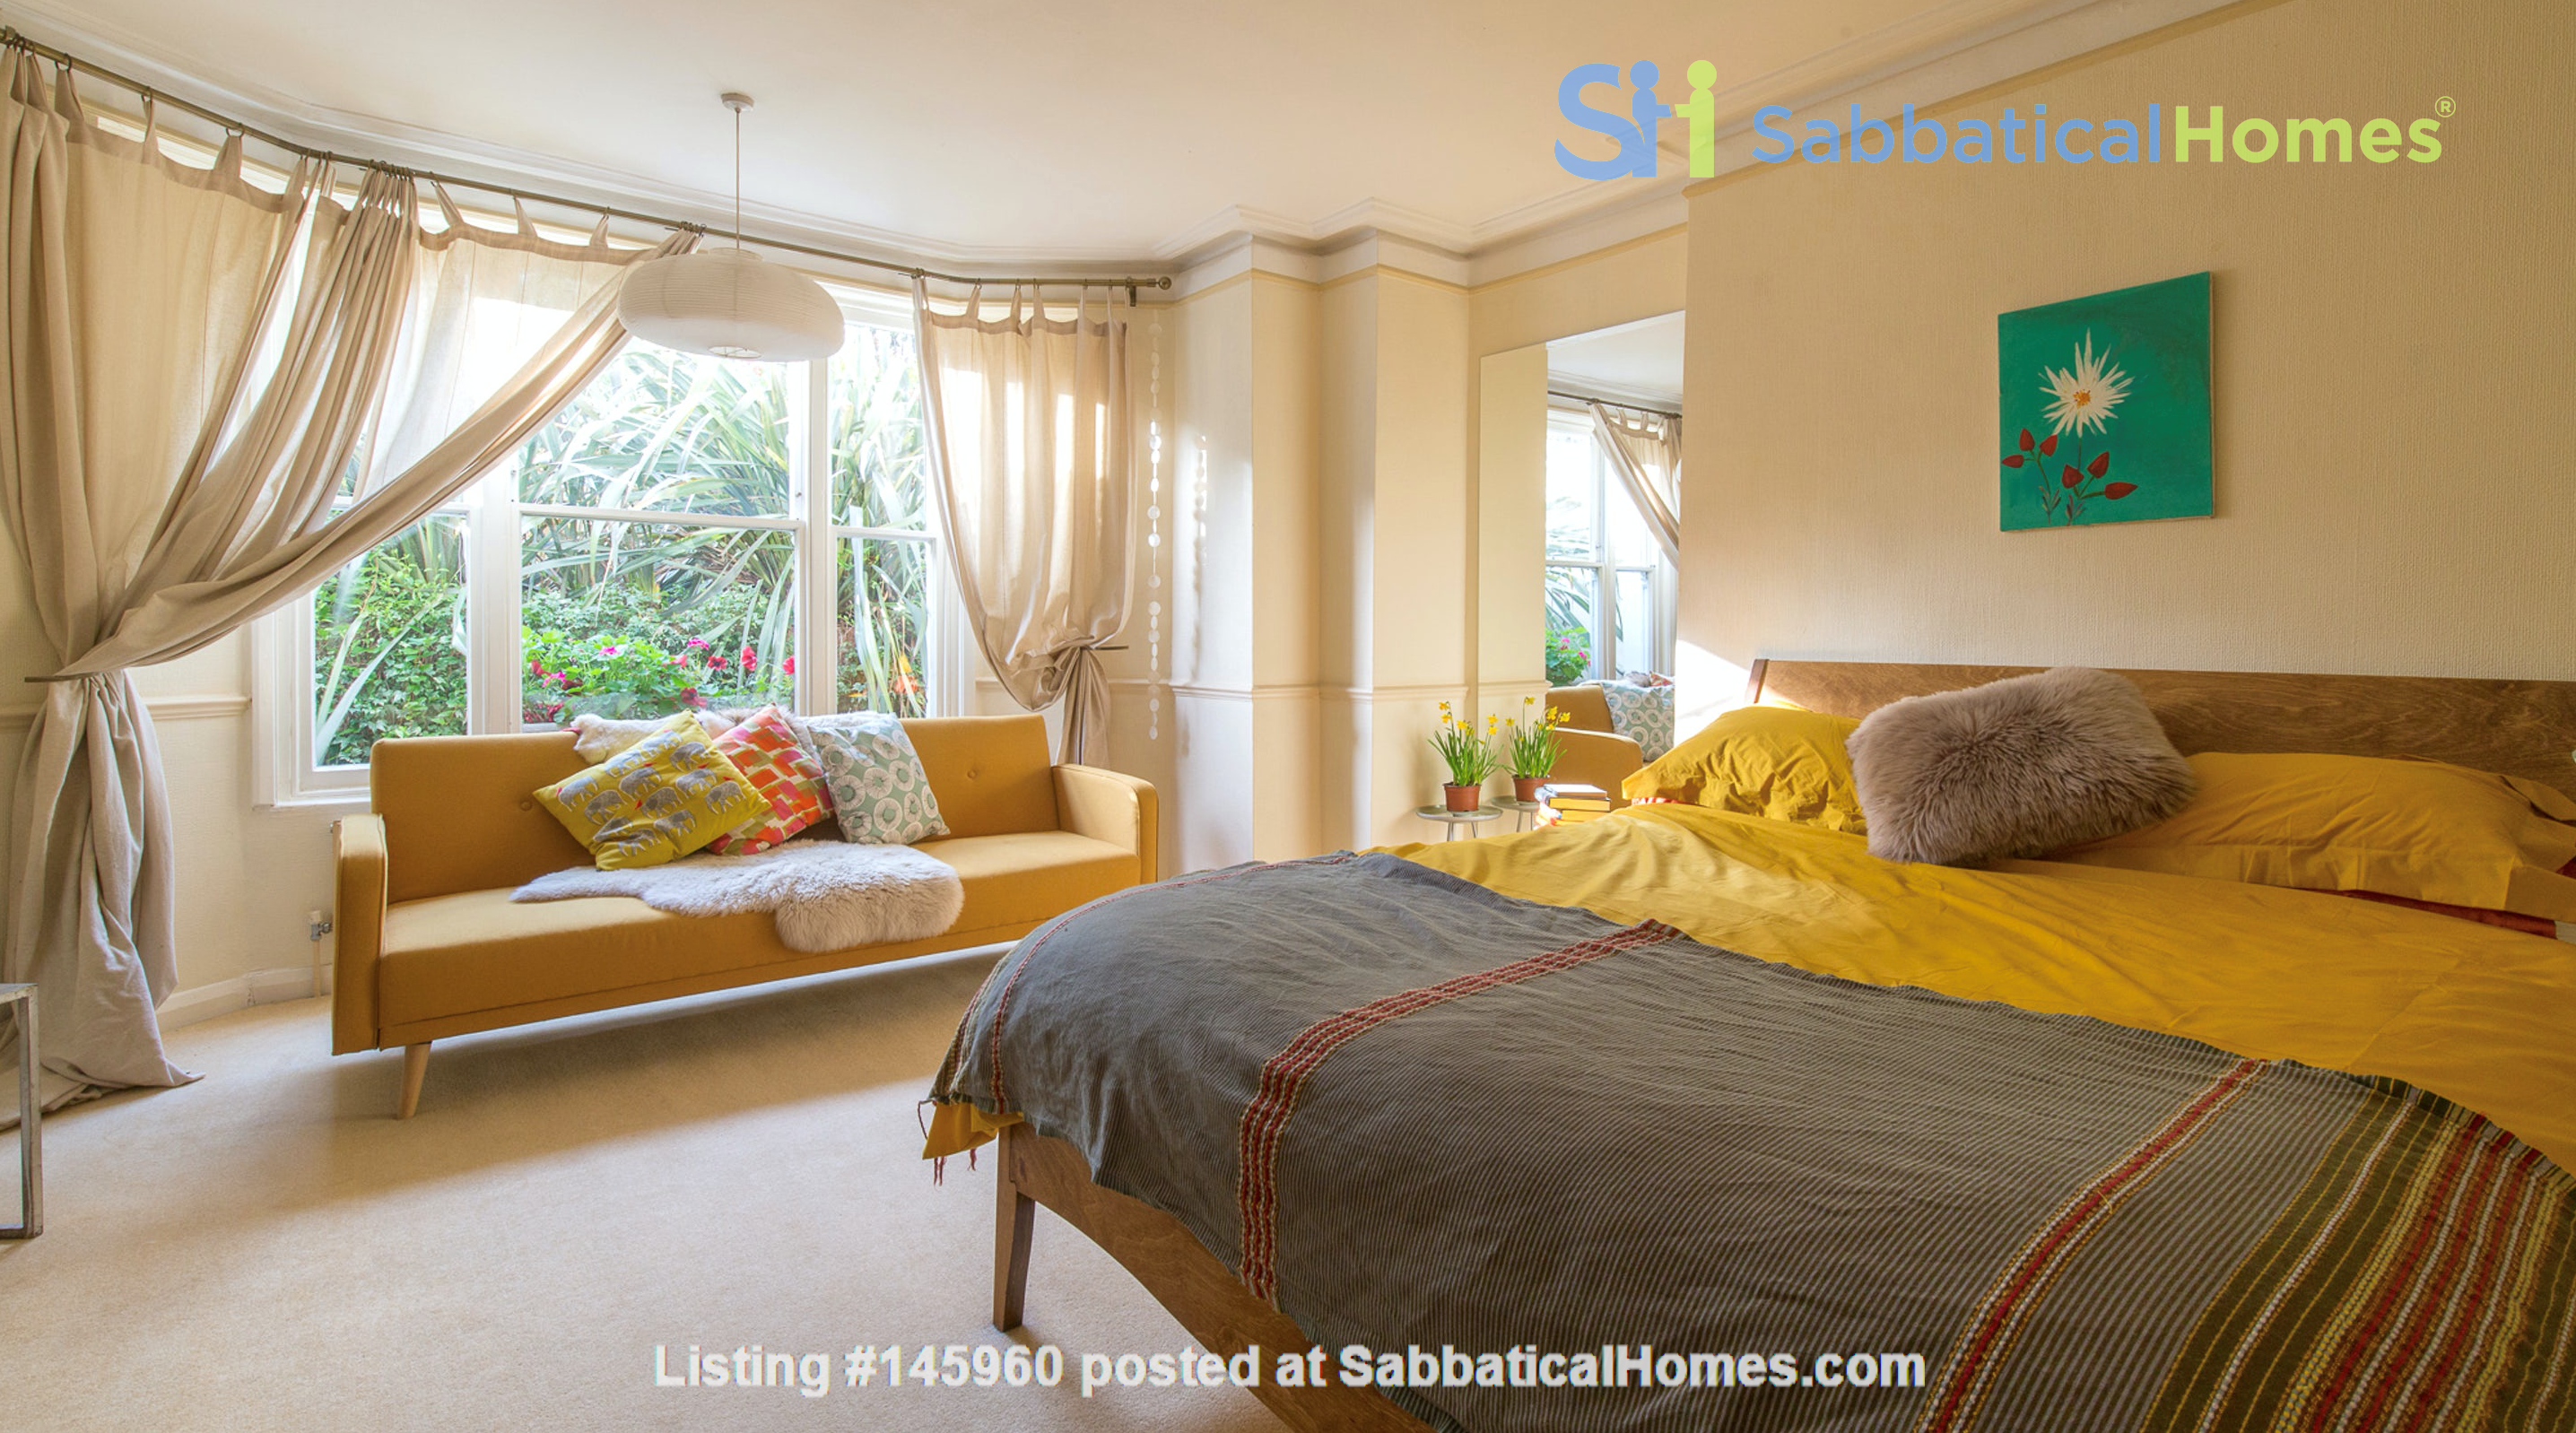 Stunning architectural Victorian family home with 3 bedrooms & large garden Home Rental in  3